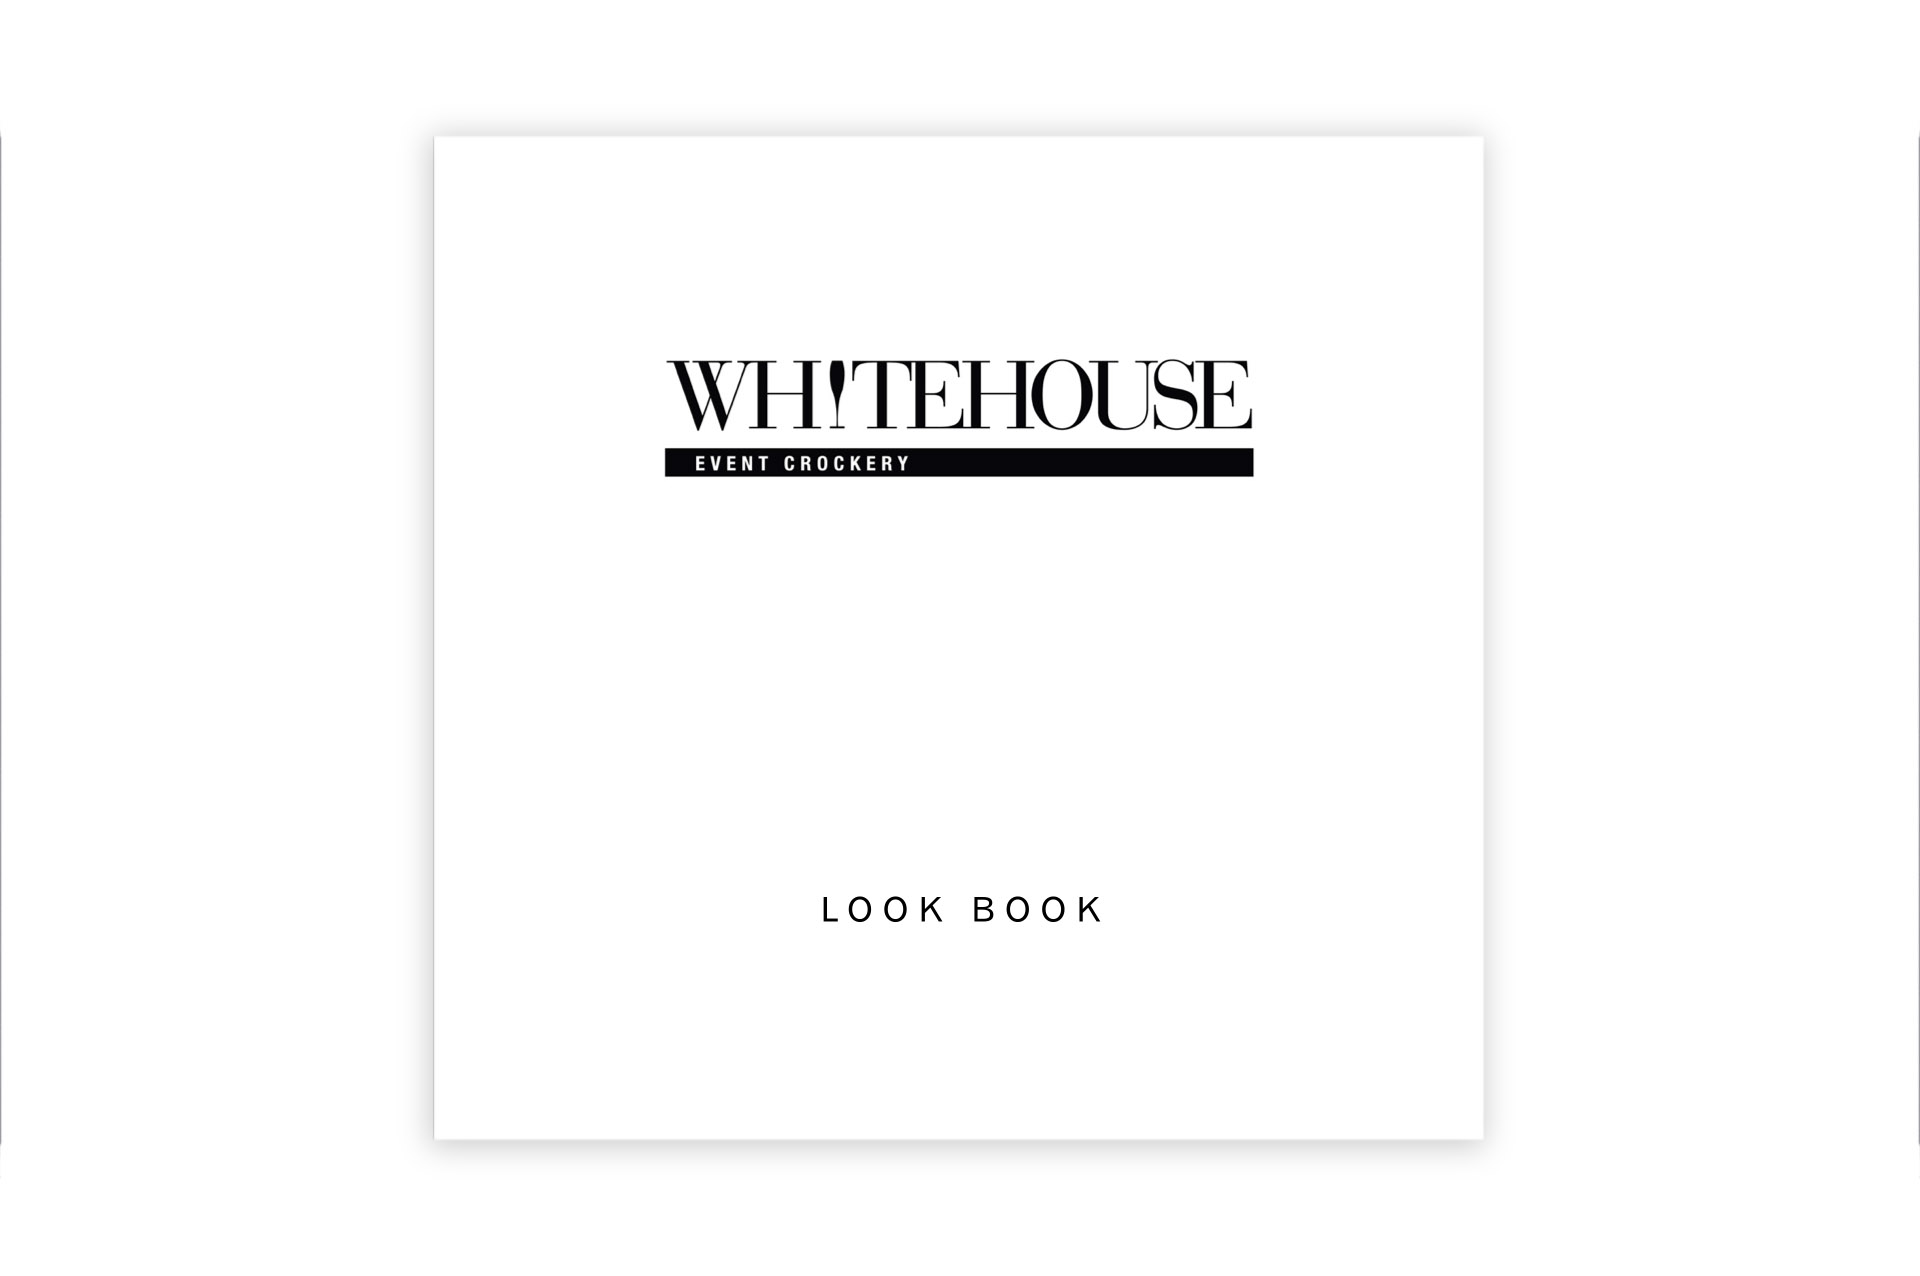 WHITEHOUSE_LOOKBOOK_2018_page_one